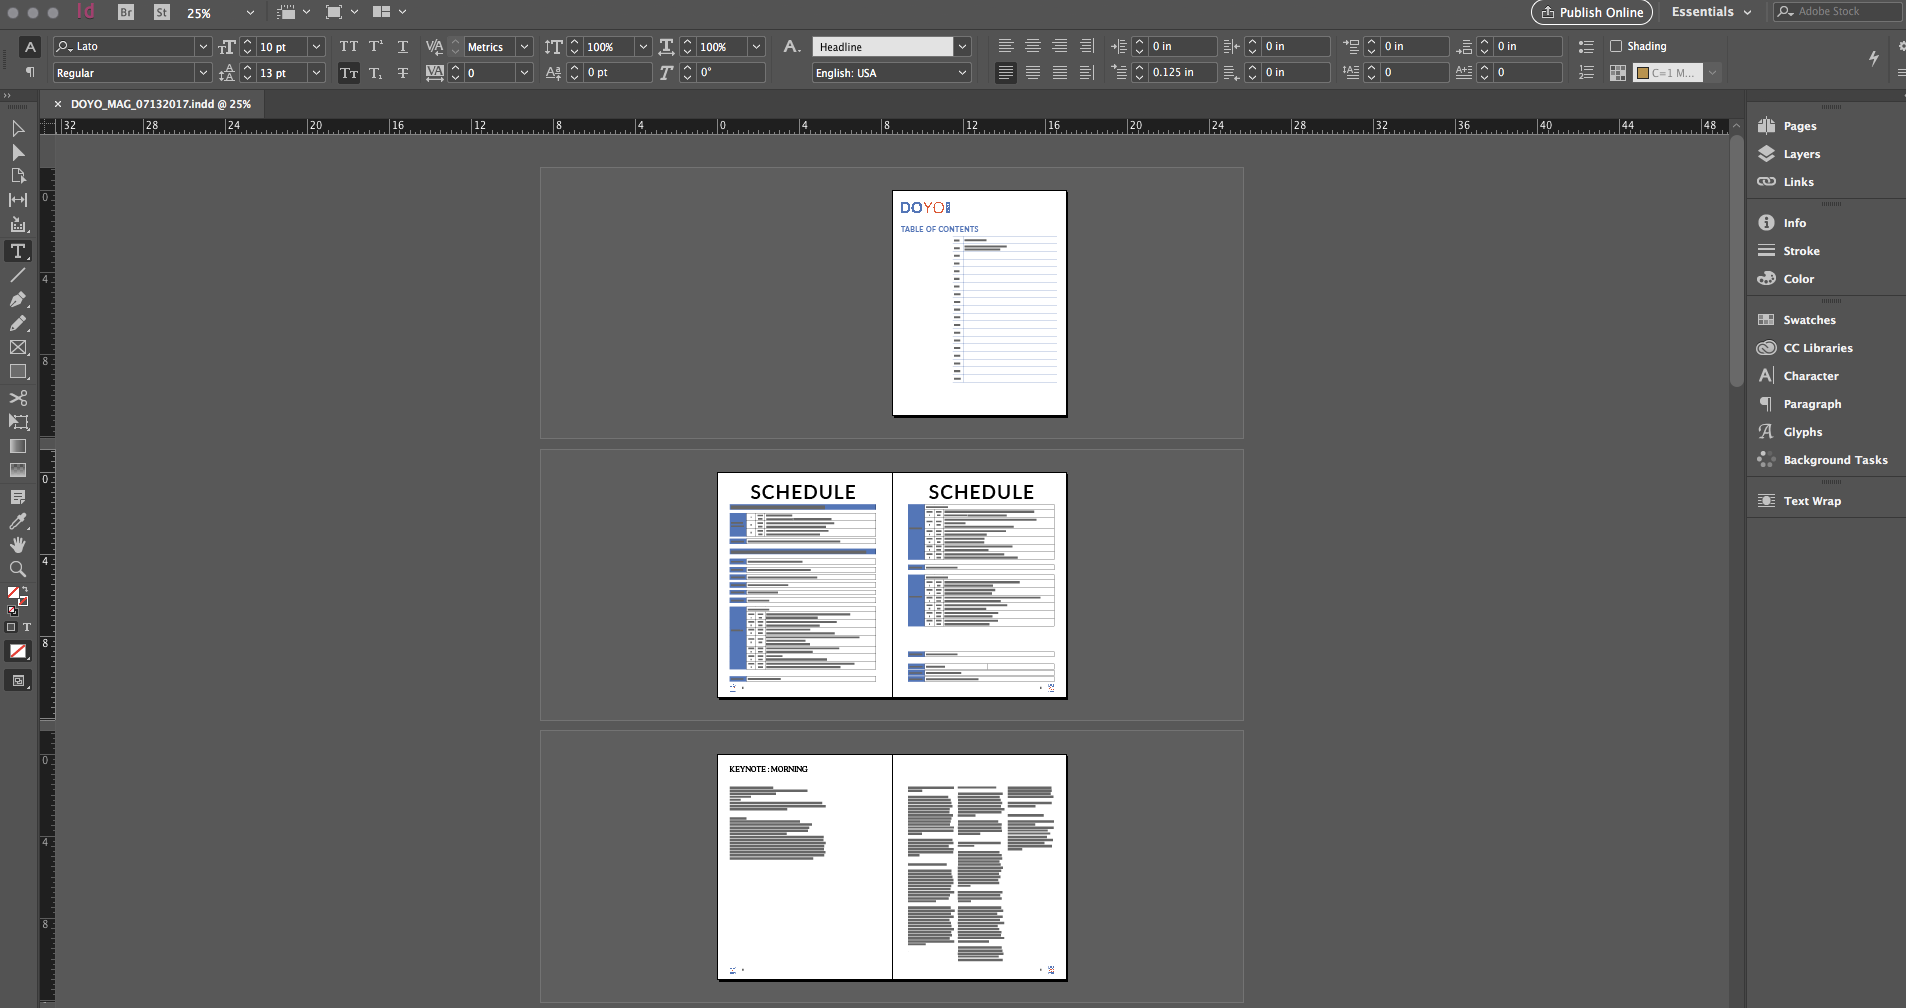 InDesign! This is a 20 page magazine that I'm working on, the perfect project to use InDesign.